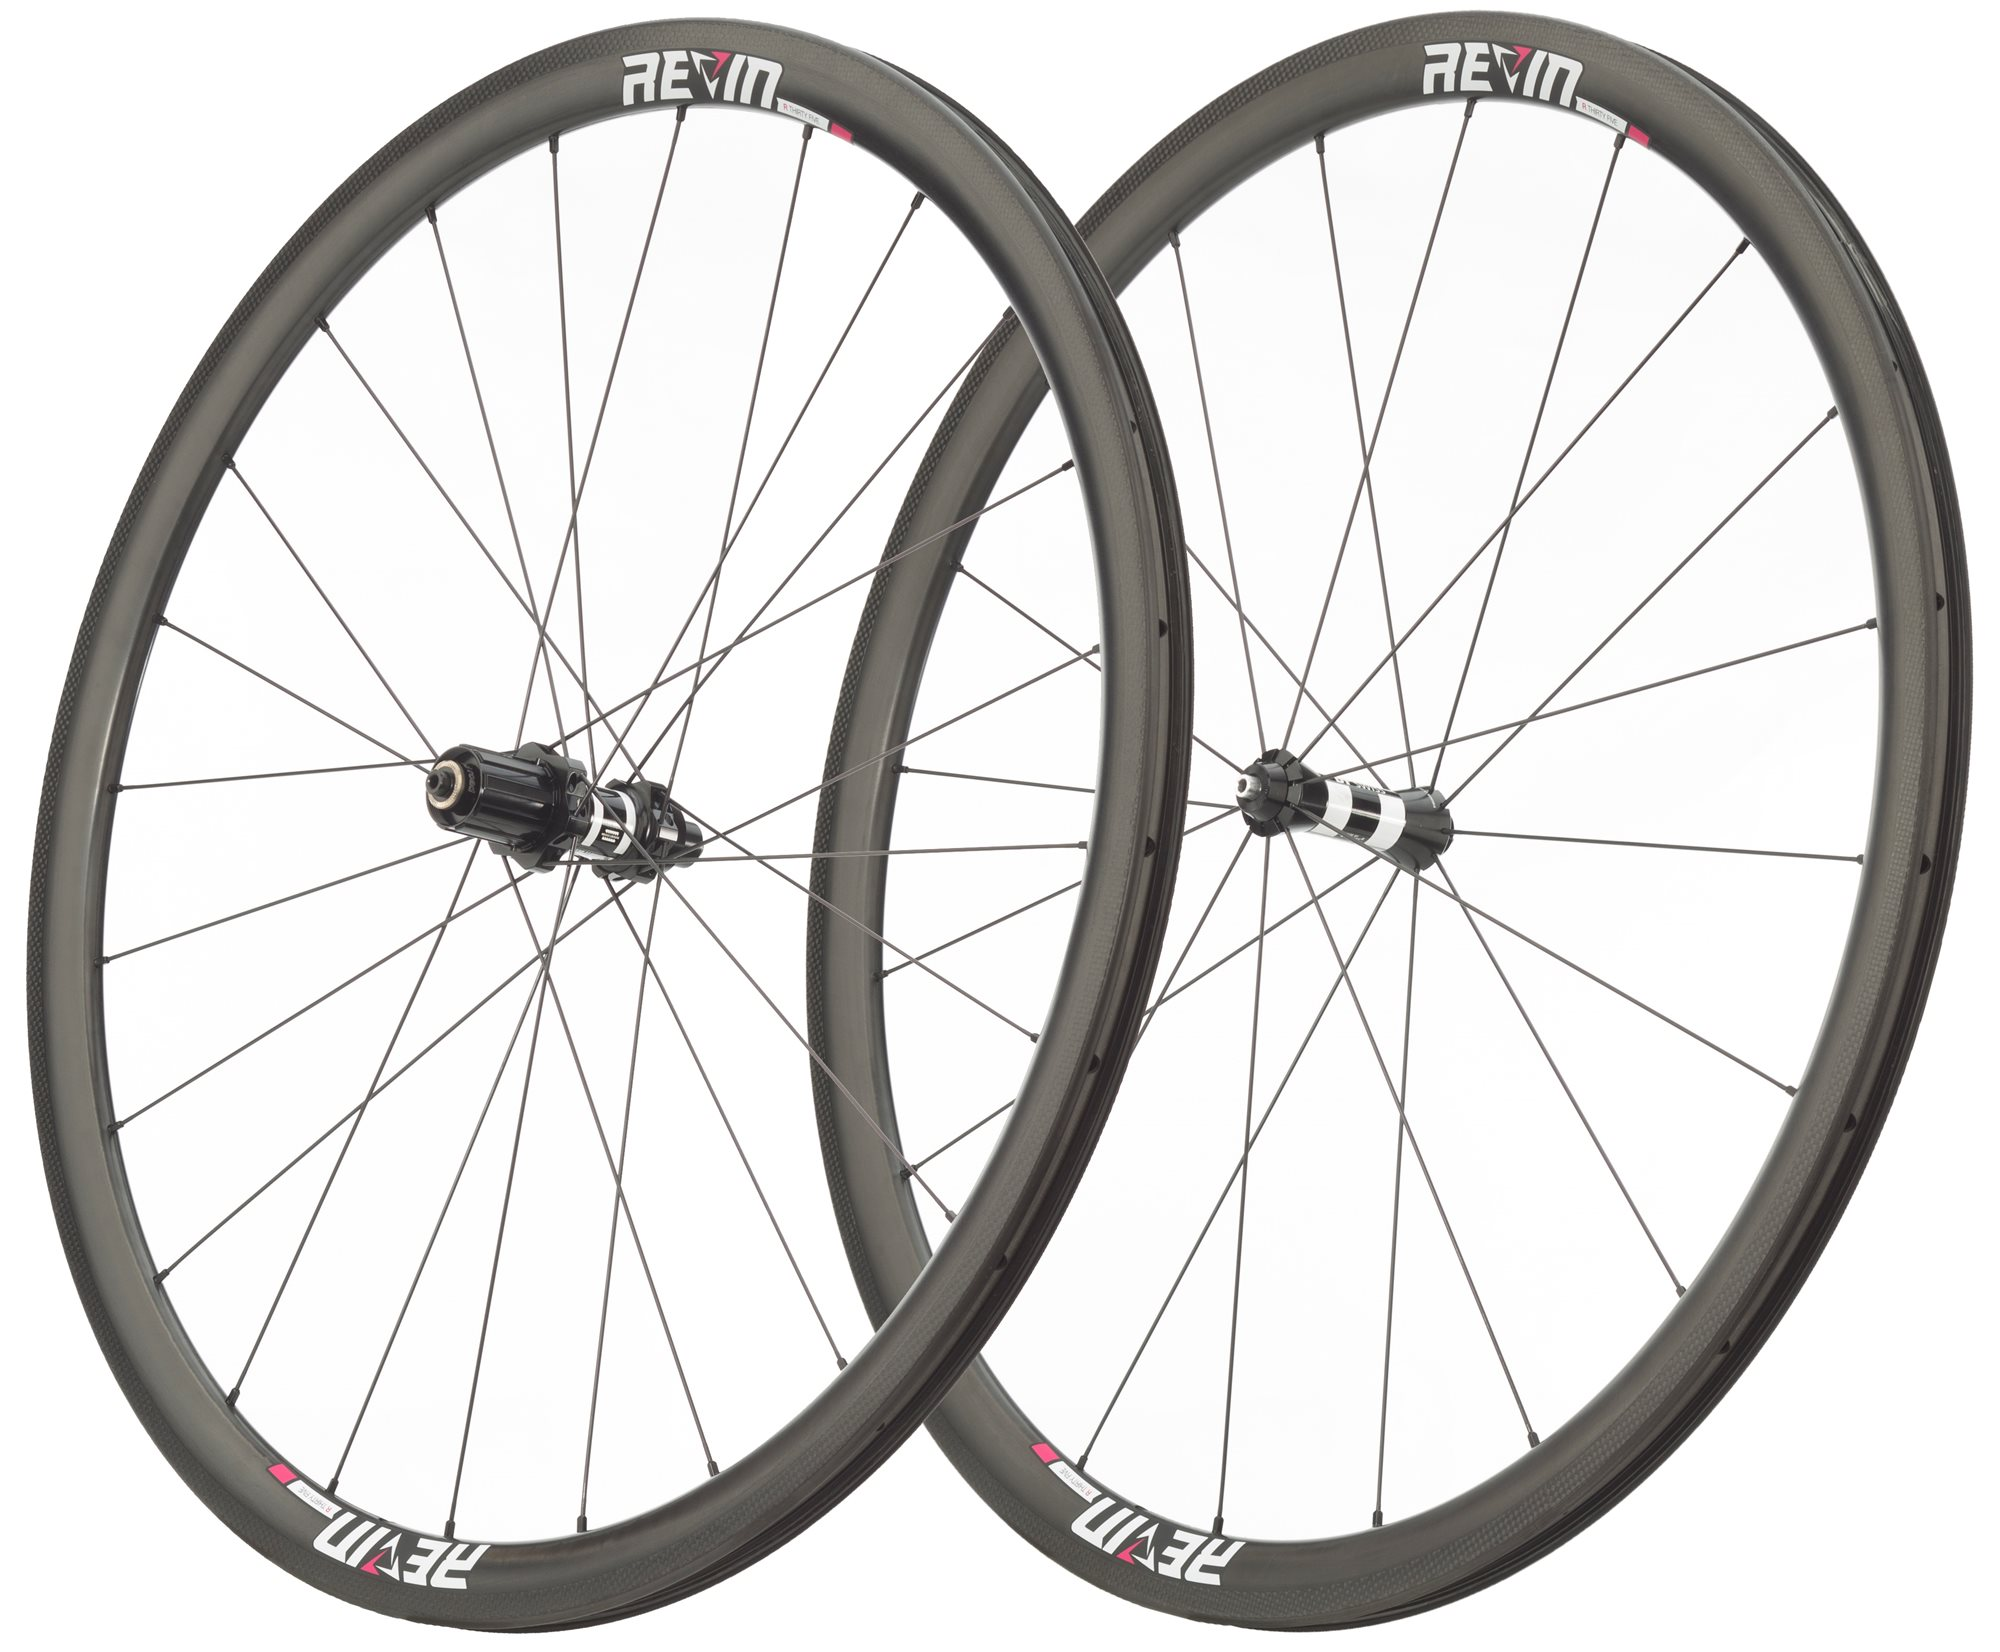 Revin rolls out carbon MTB & Road wheels first for new premium component line up